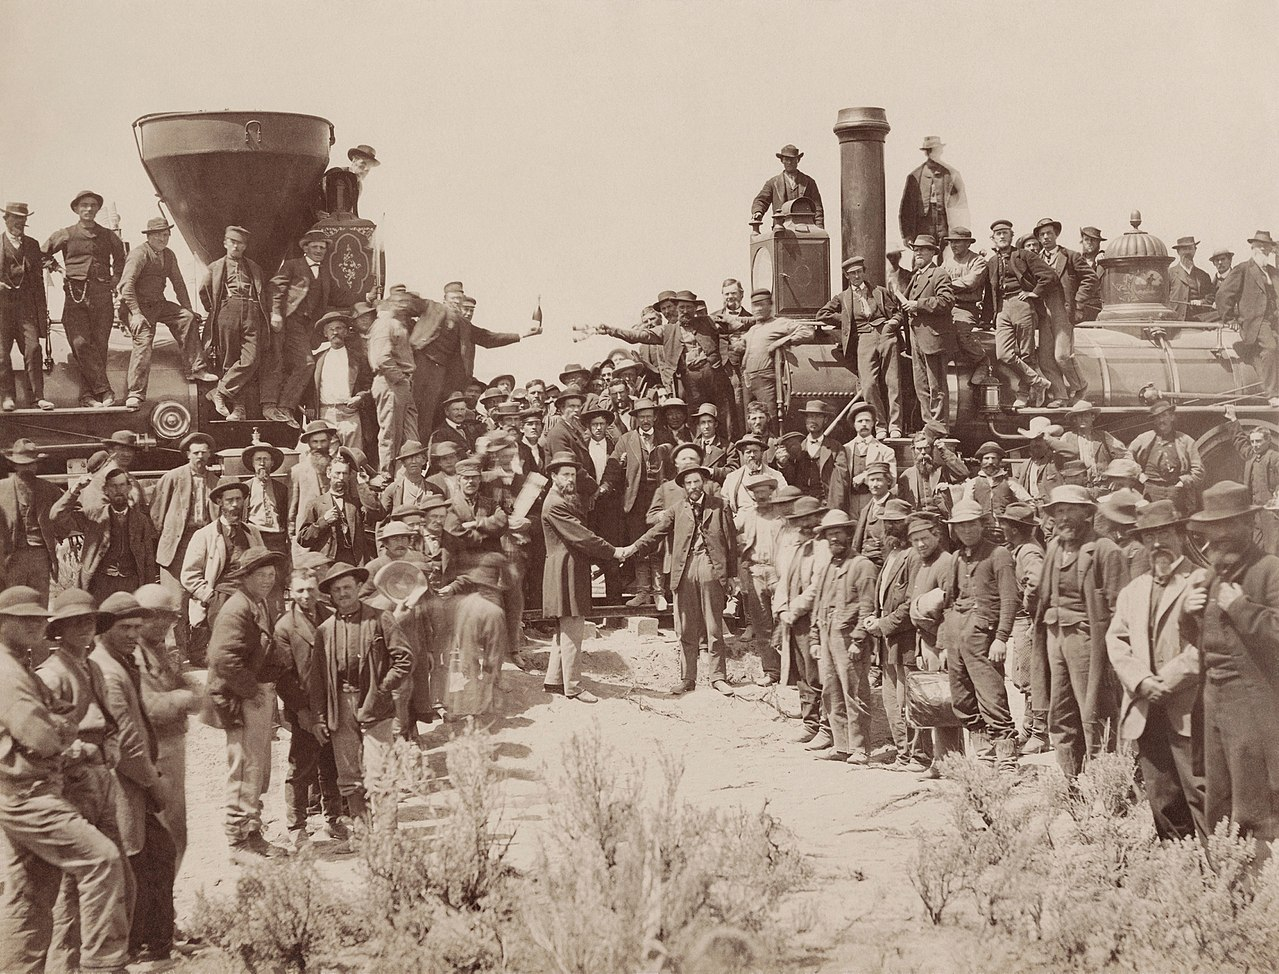 A black and white photograph shows two railroad engines facing each other. The left exhaust pipe is large and shaped like an inverted funnel, while the other exhaust pipe is straight. There are many men in the photograph, standing on the ground, on the engines, and all around. They generally wear hats and working clothes, and some carry shovels or pickaxes. Some are dressed as conductors on trains. Two men in suits stand in the center and shake hands while everyone watches them or faces the camera.